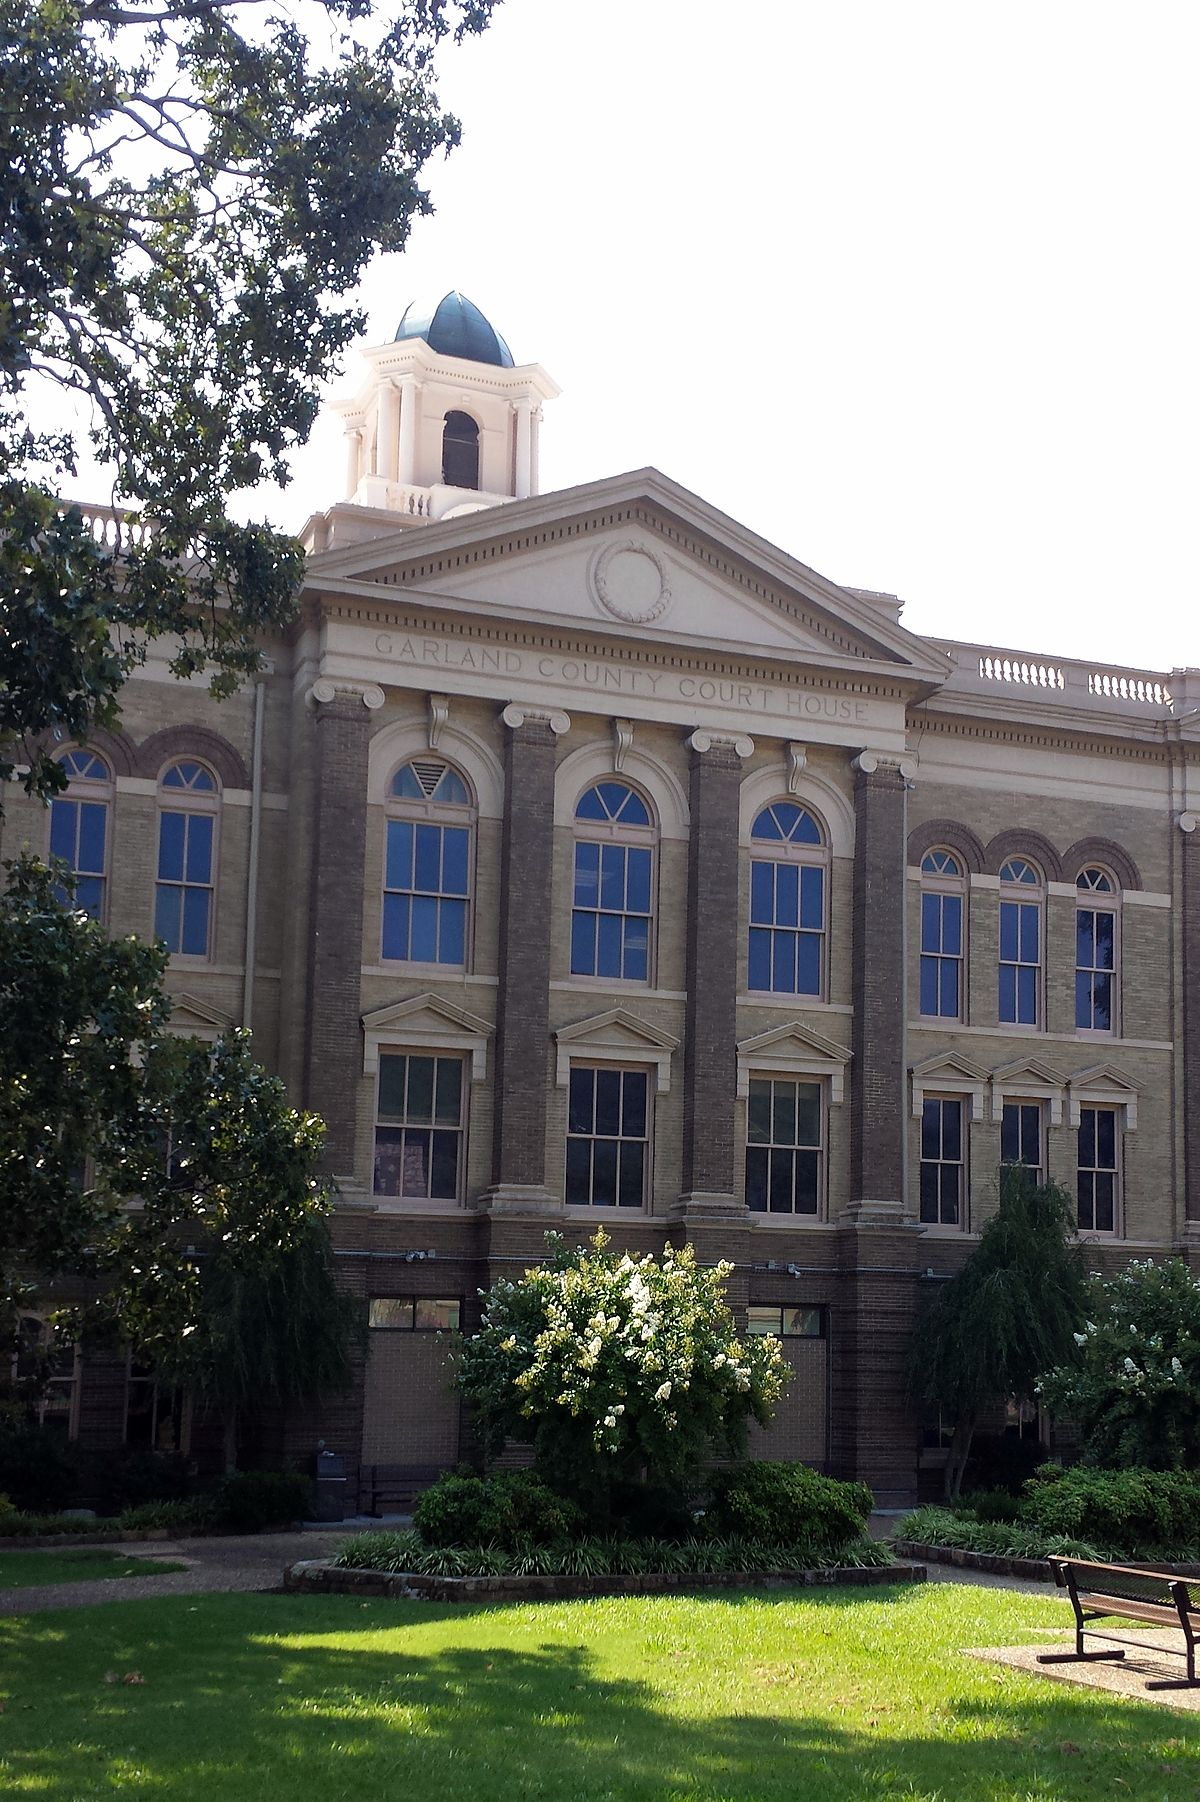 Garland County Property Tax Records